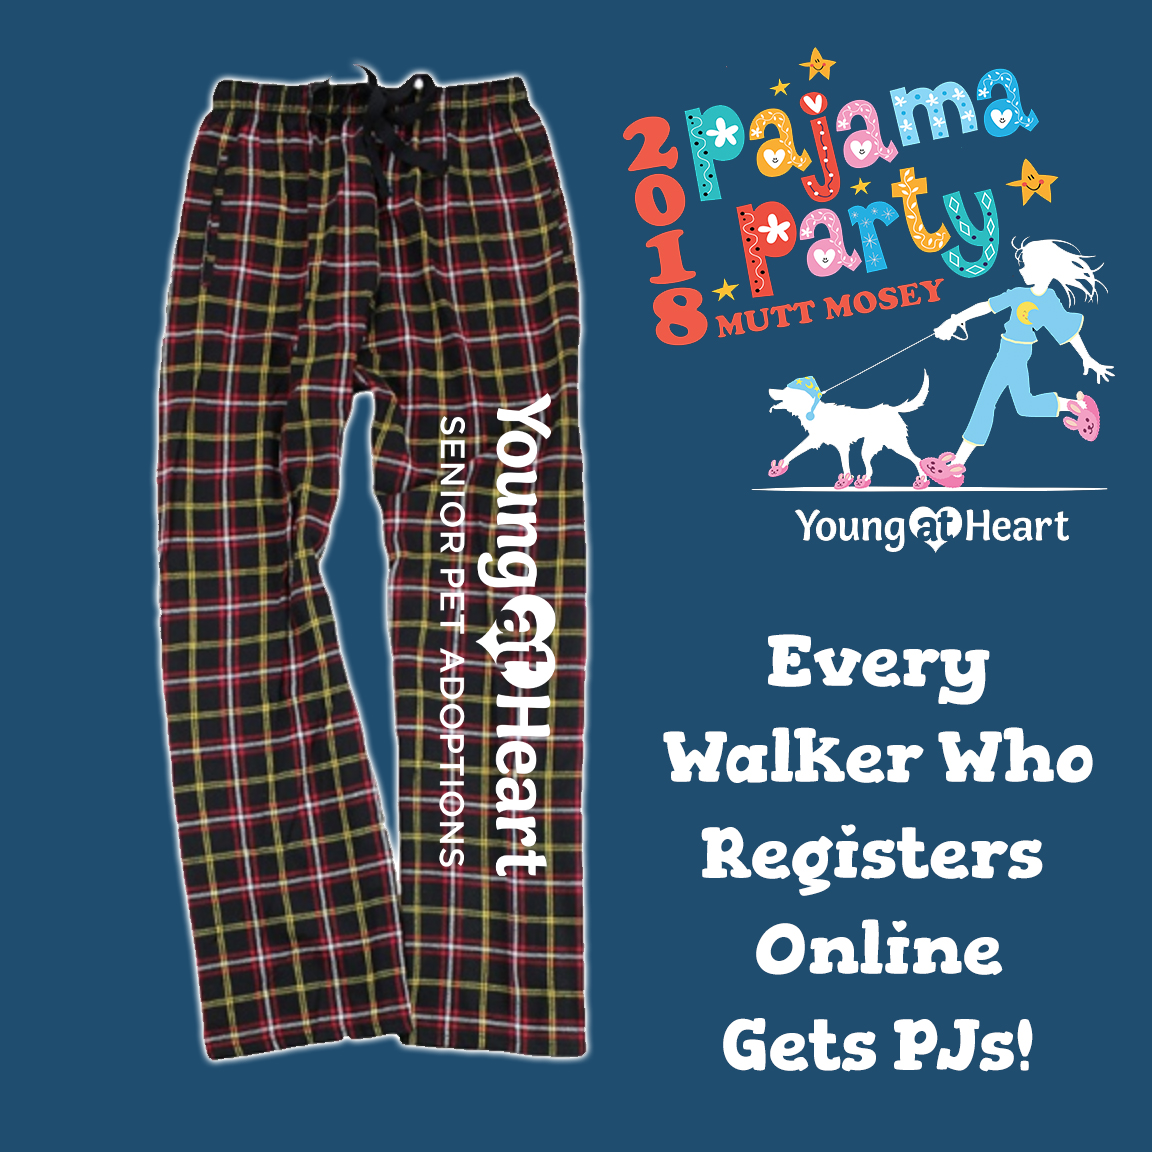 Young at Heart's Mutt Mosey Fundraiser Walk - Pajama Party! Photo